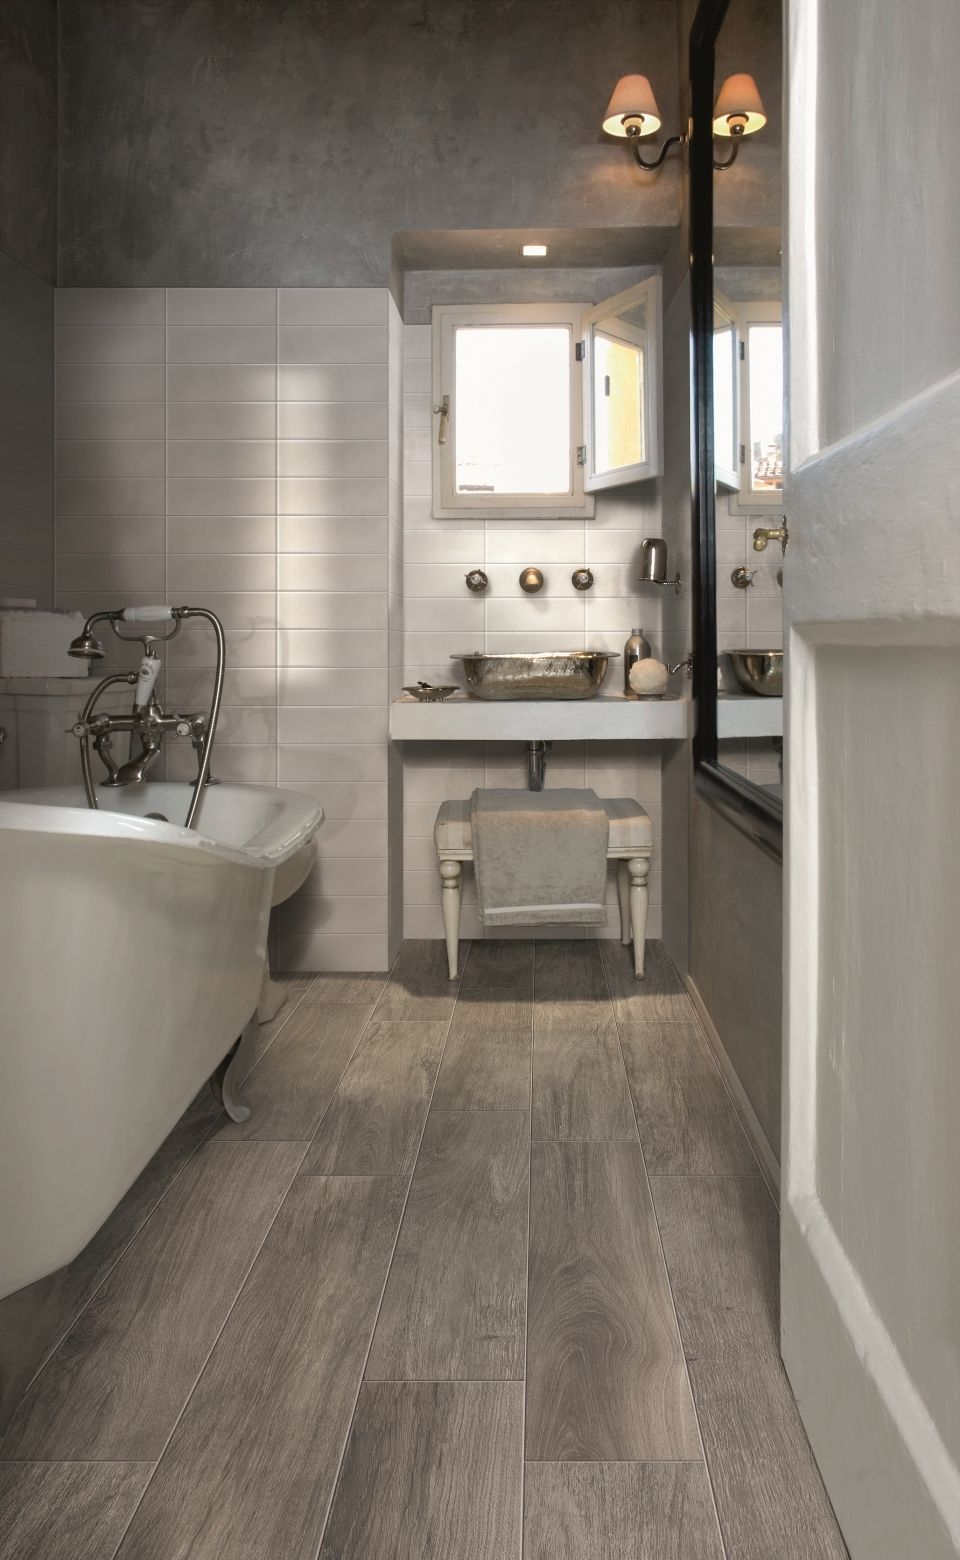 Lux Wood Wood Look Porcelain Tile Architectural Ceramics With Images Faux Wood Tiles Bathrooms Remodel Wood Tile Floors